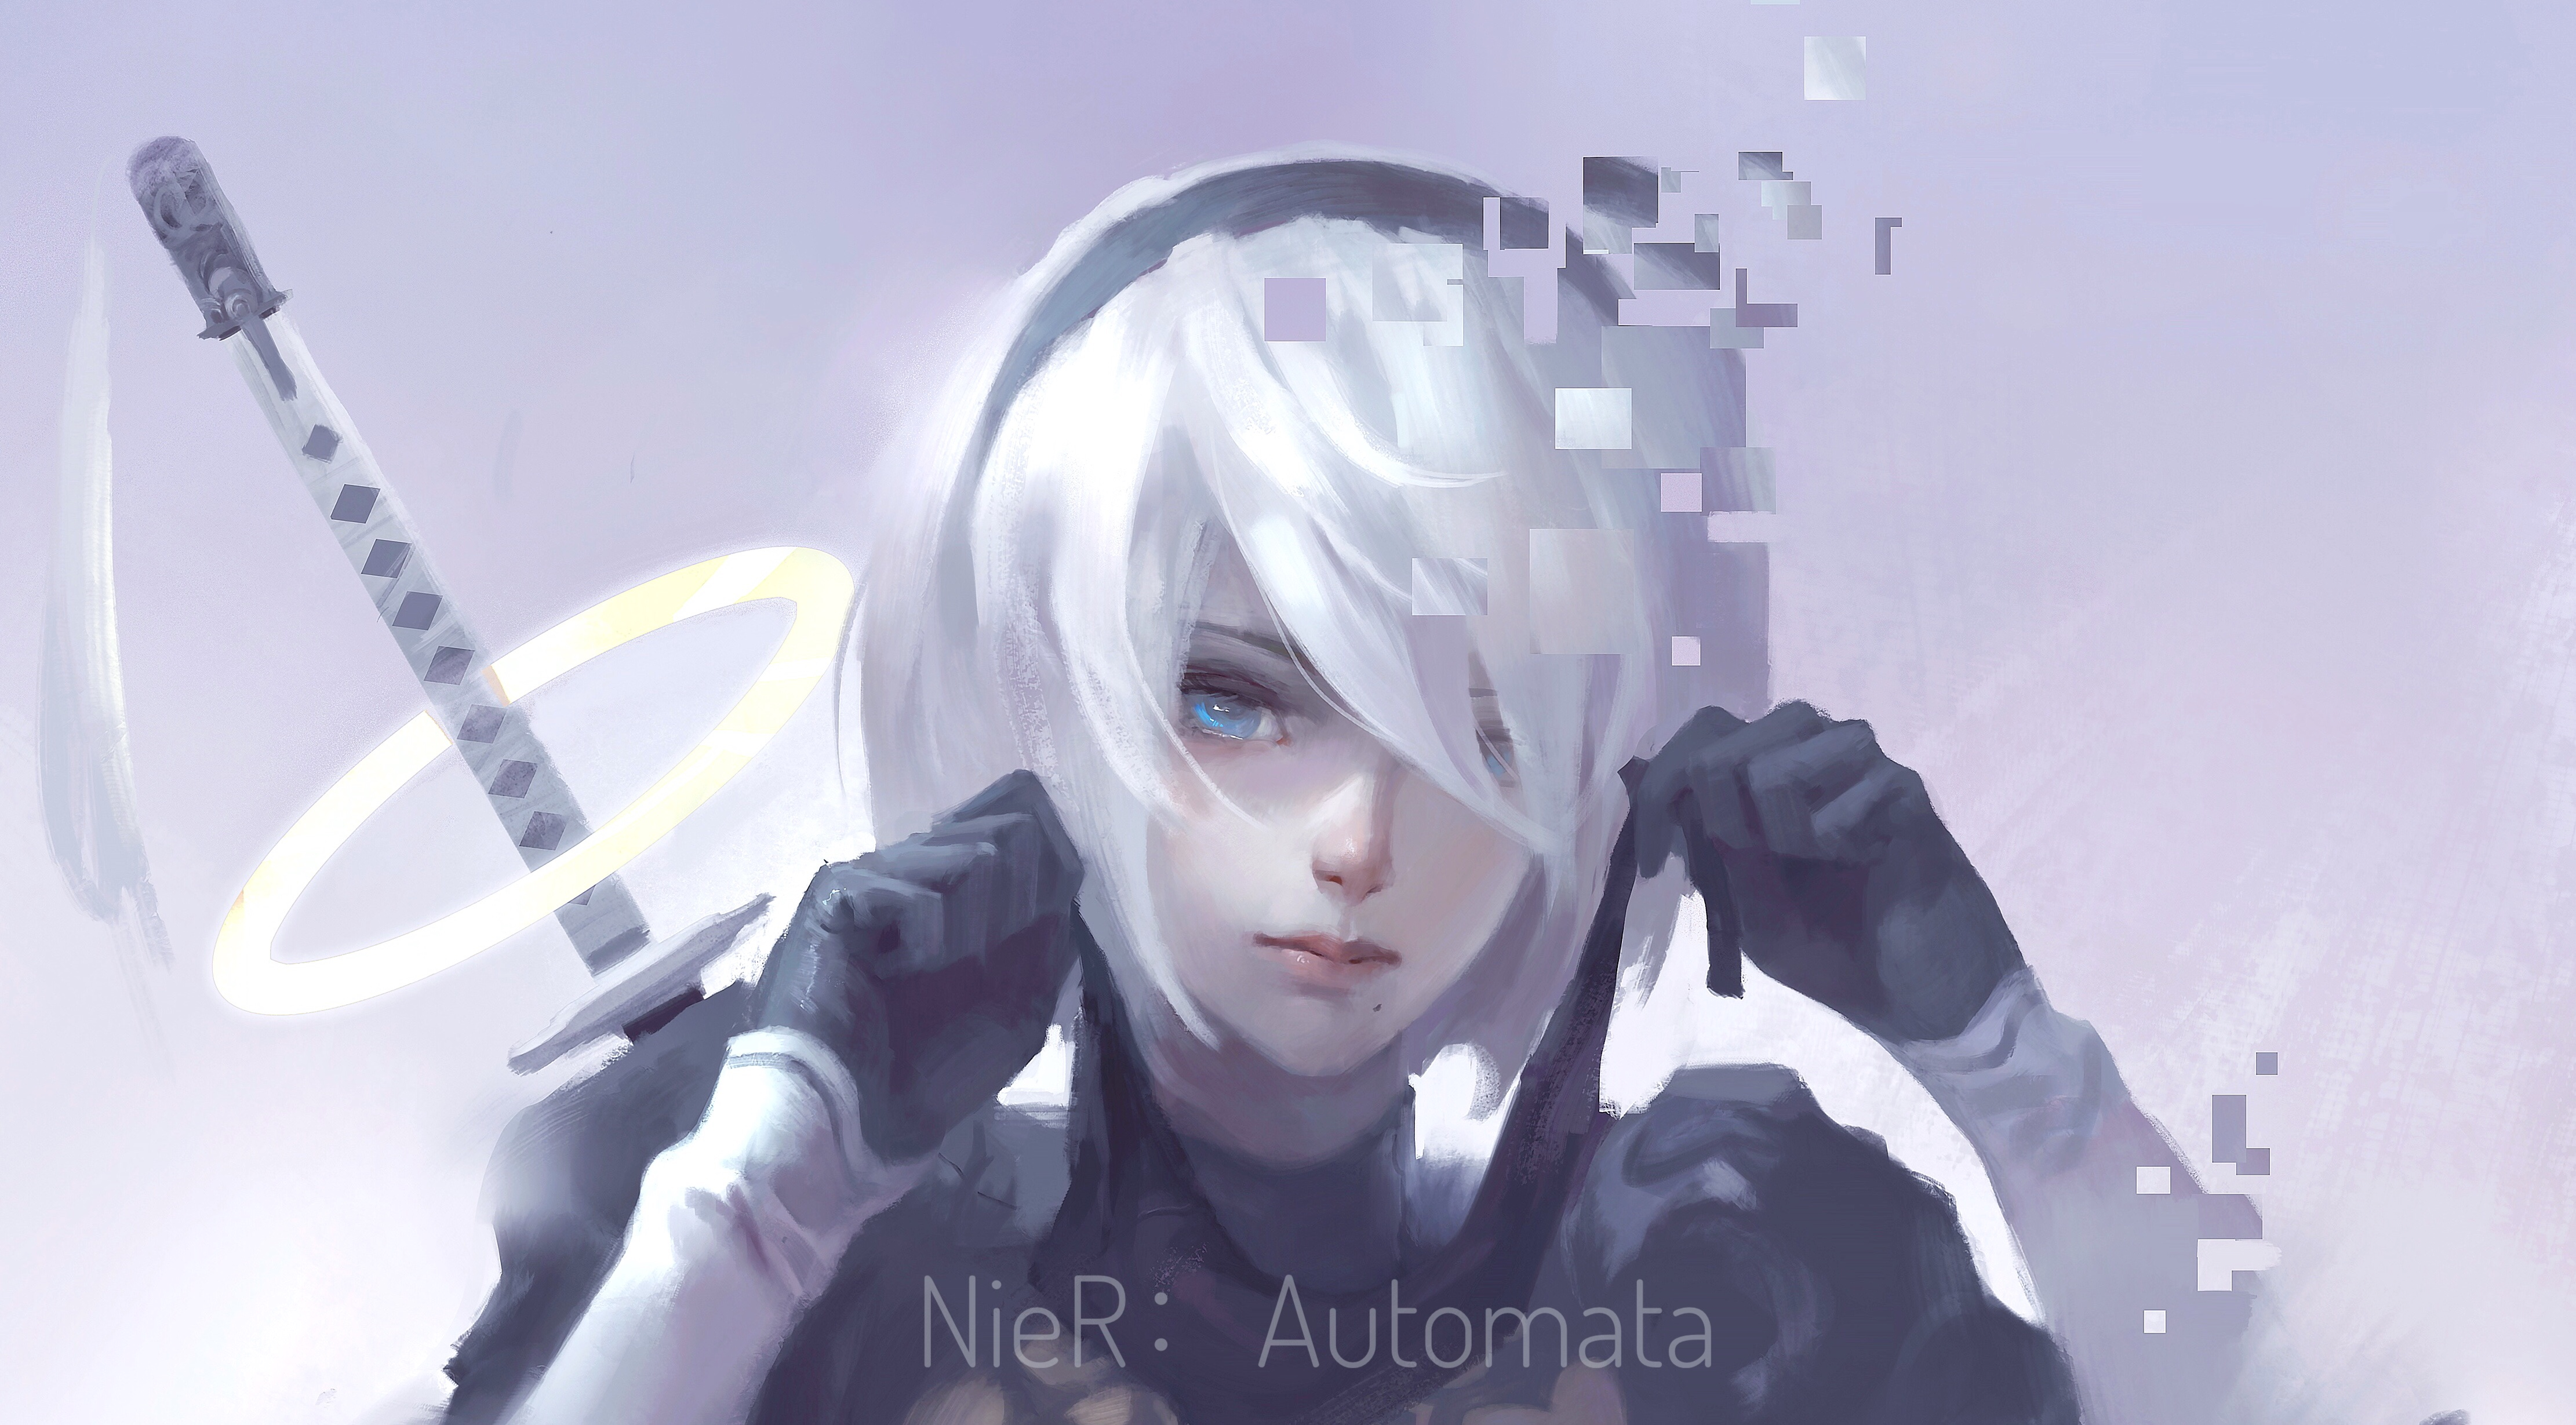 Nier Automata 4k Artworks Hd Anime 4k Wallpapers Images